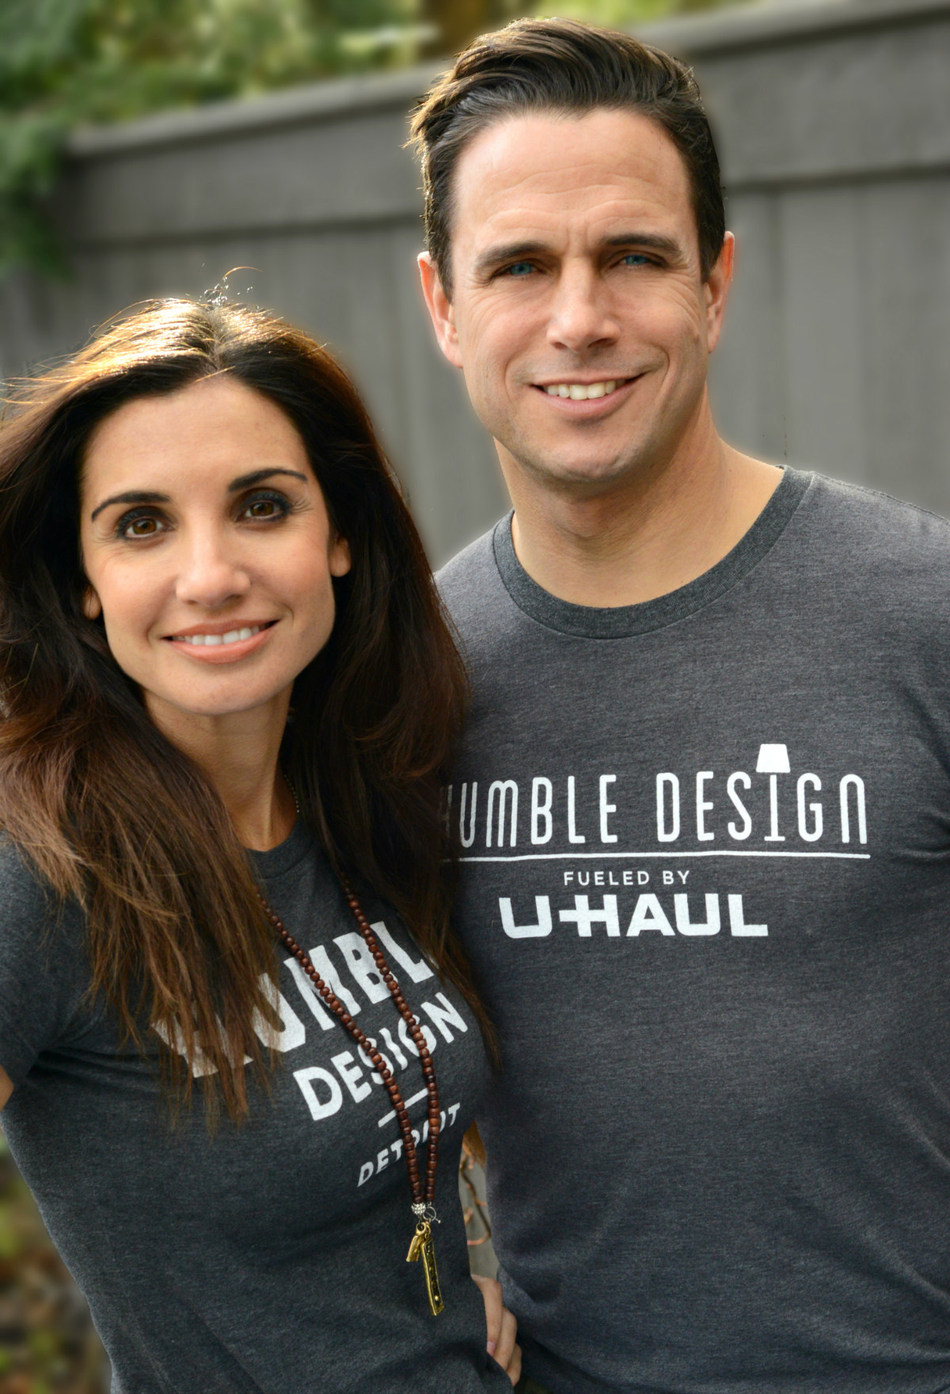 Ad industry trailblazer Rob Strasberg is leaving his post as Doner's Global Creative Chairman to join his wife, Treger, as co-CEO of nonprofit Humble Design Fueled by U-Haul.  Humble Design is a Detroit-based nonprofit that helps families transitioning out of homeless shelters by providing furnishings and design services.